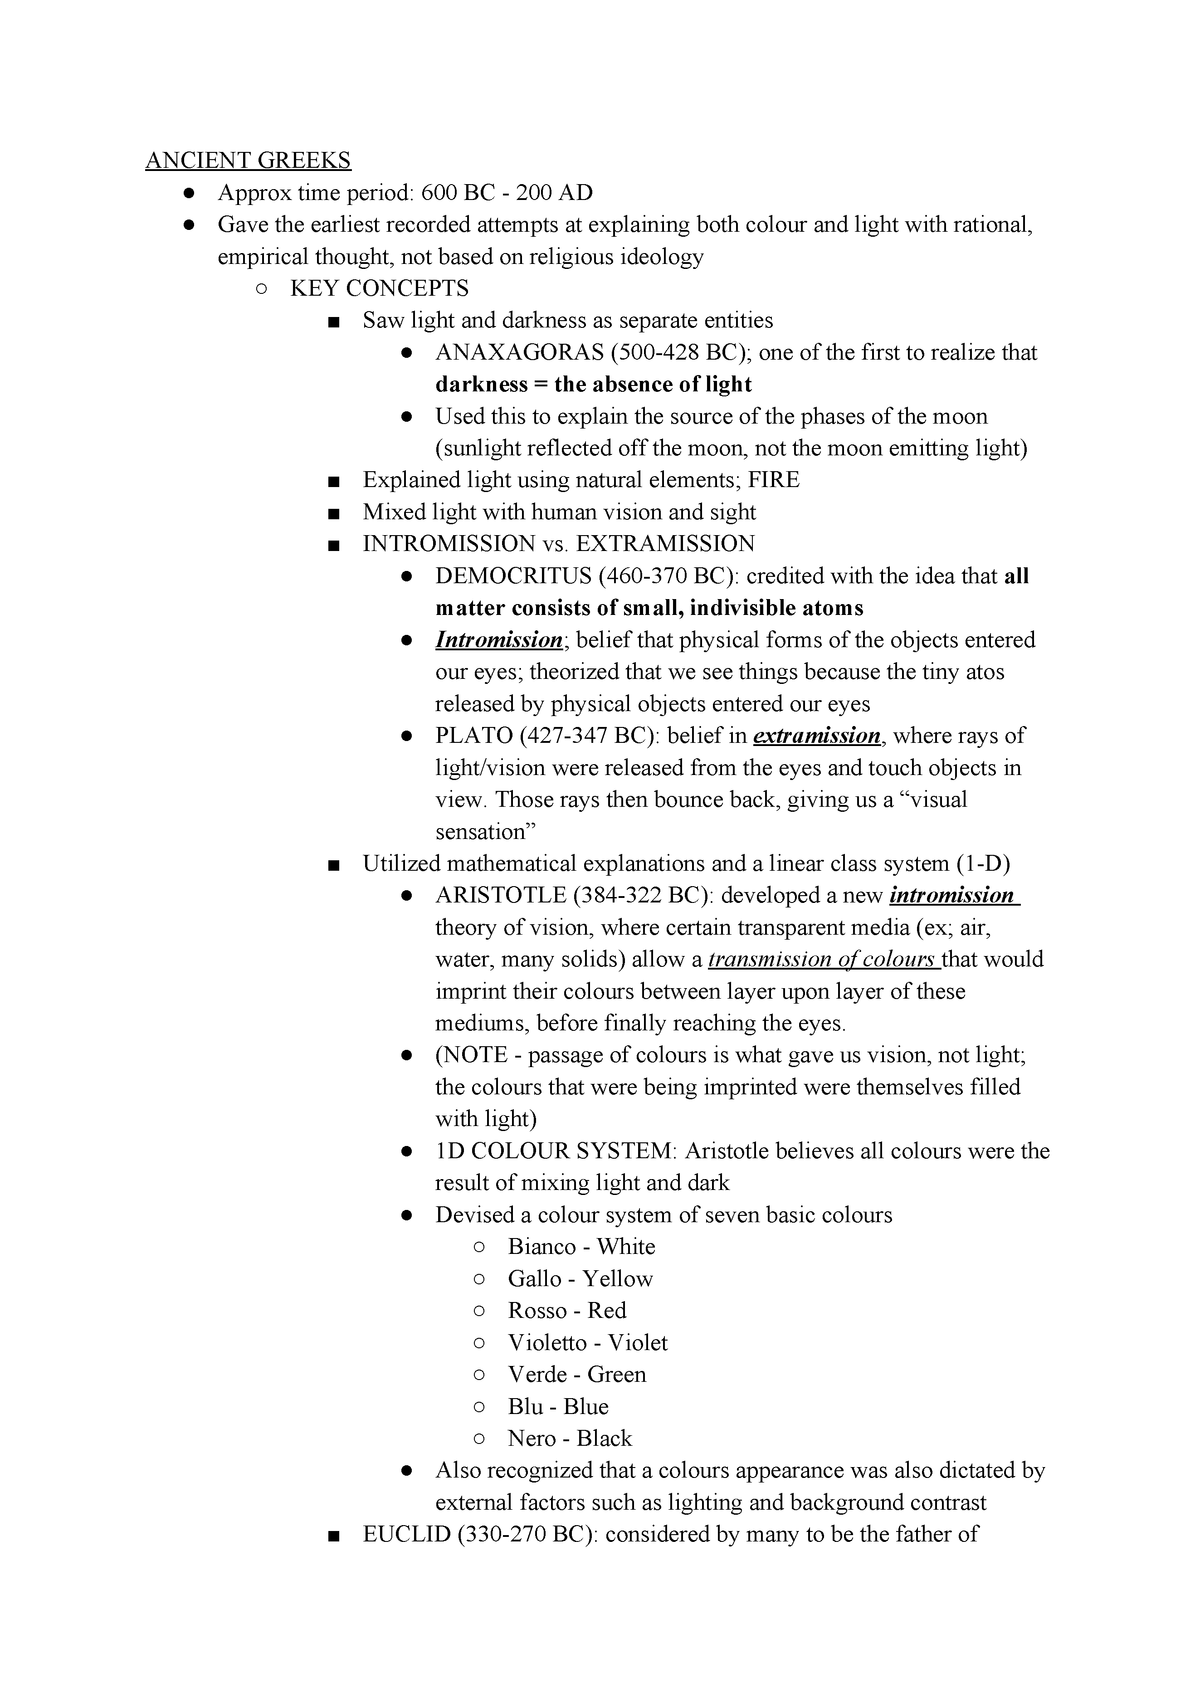 UNIT 1 History OF Light AND Colour Notes - Sc/Nats 1870